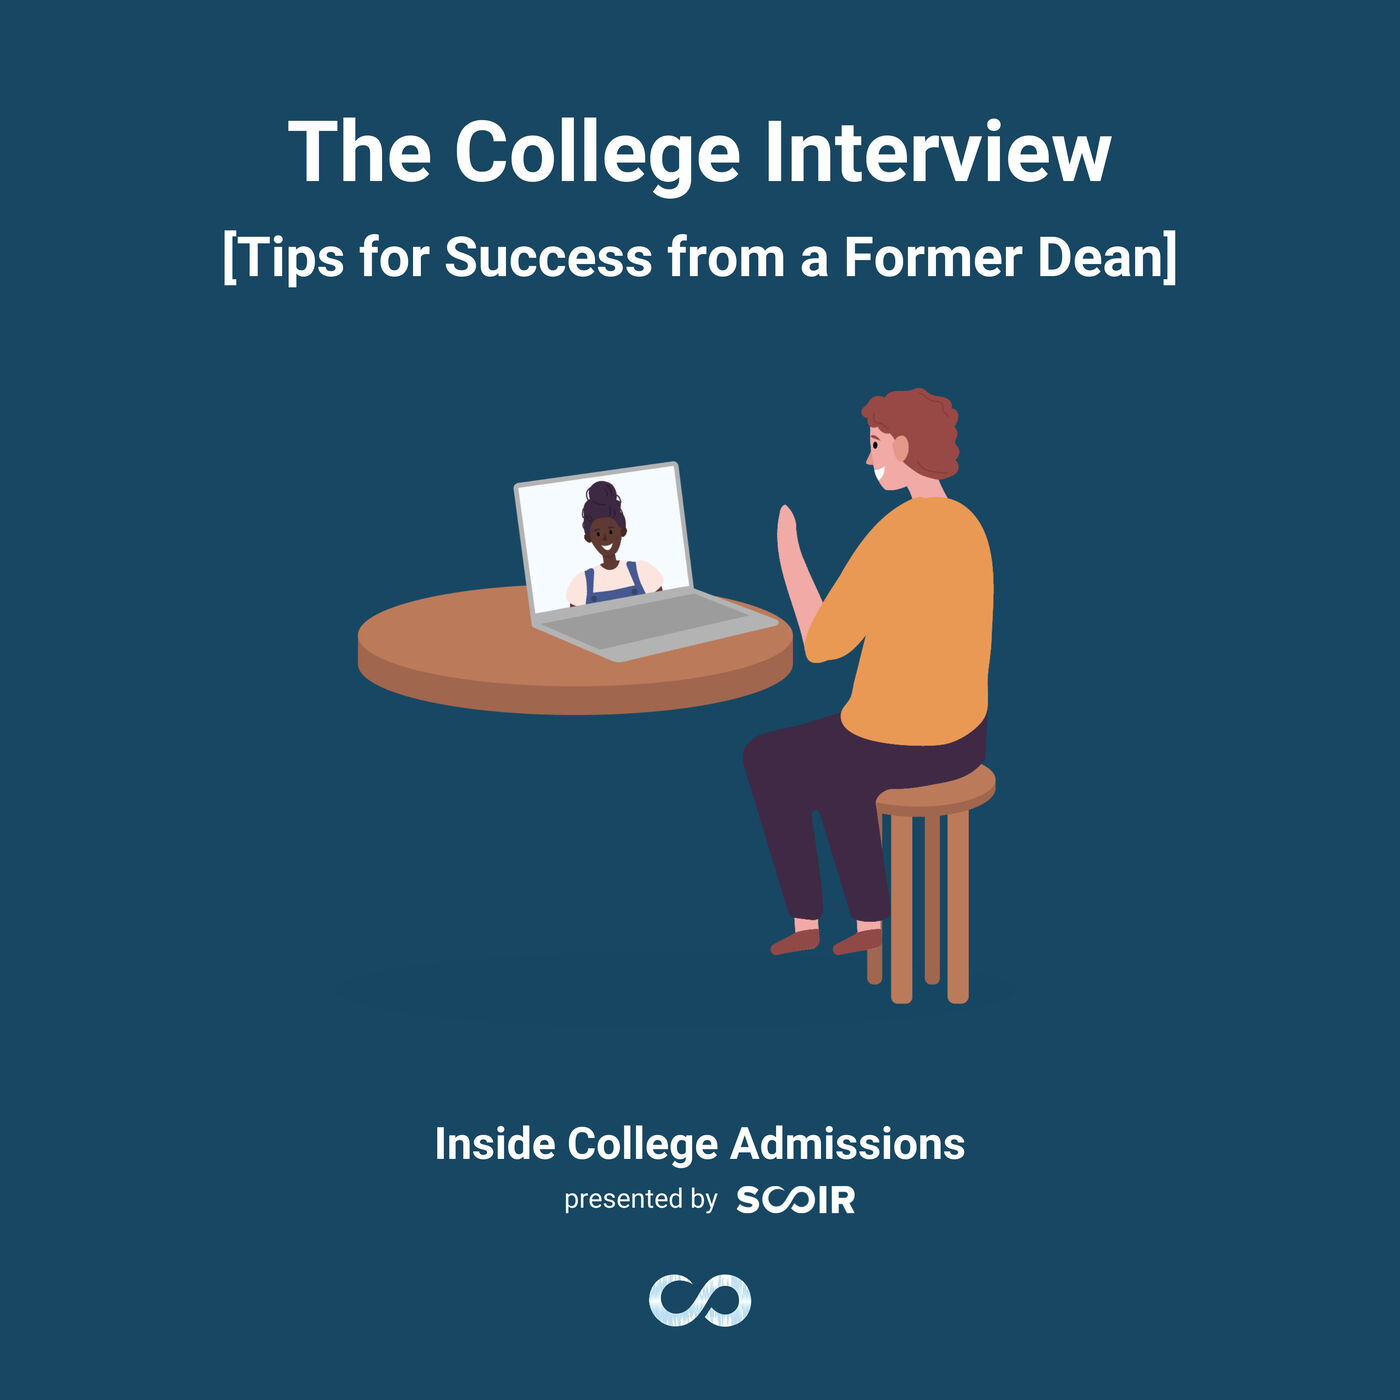 The College Interview [Tips for Success from a Former Dean]